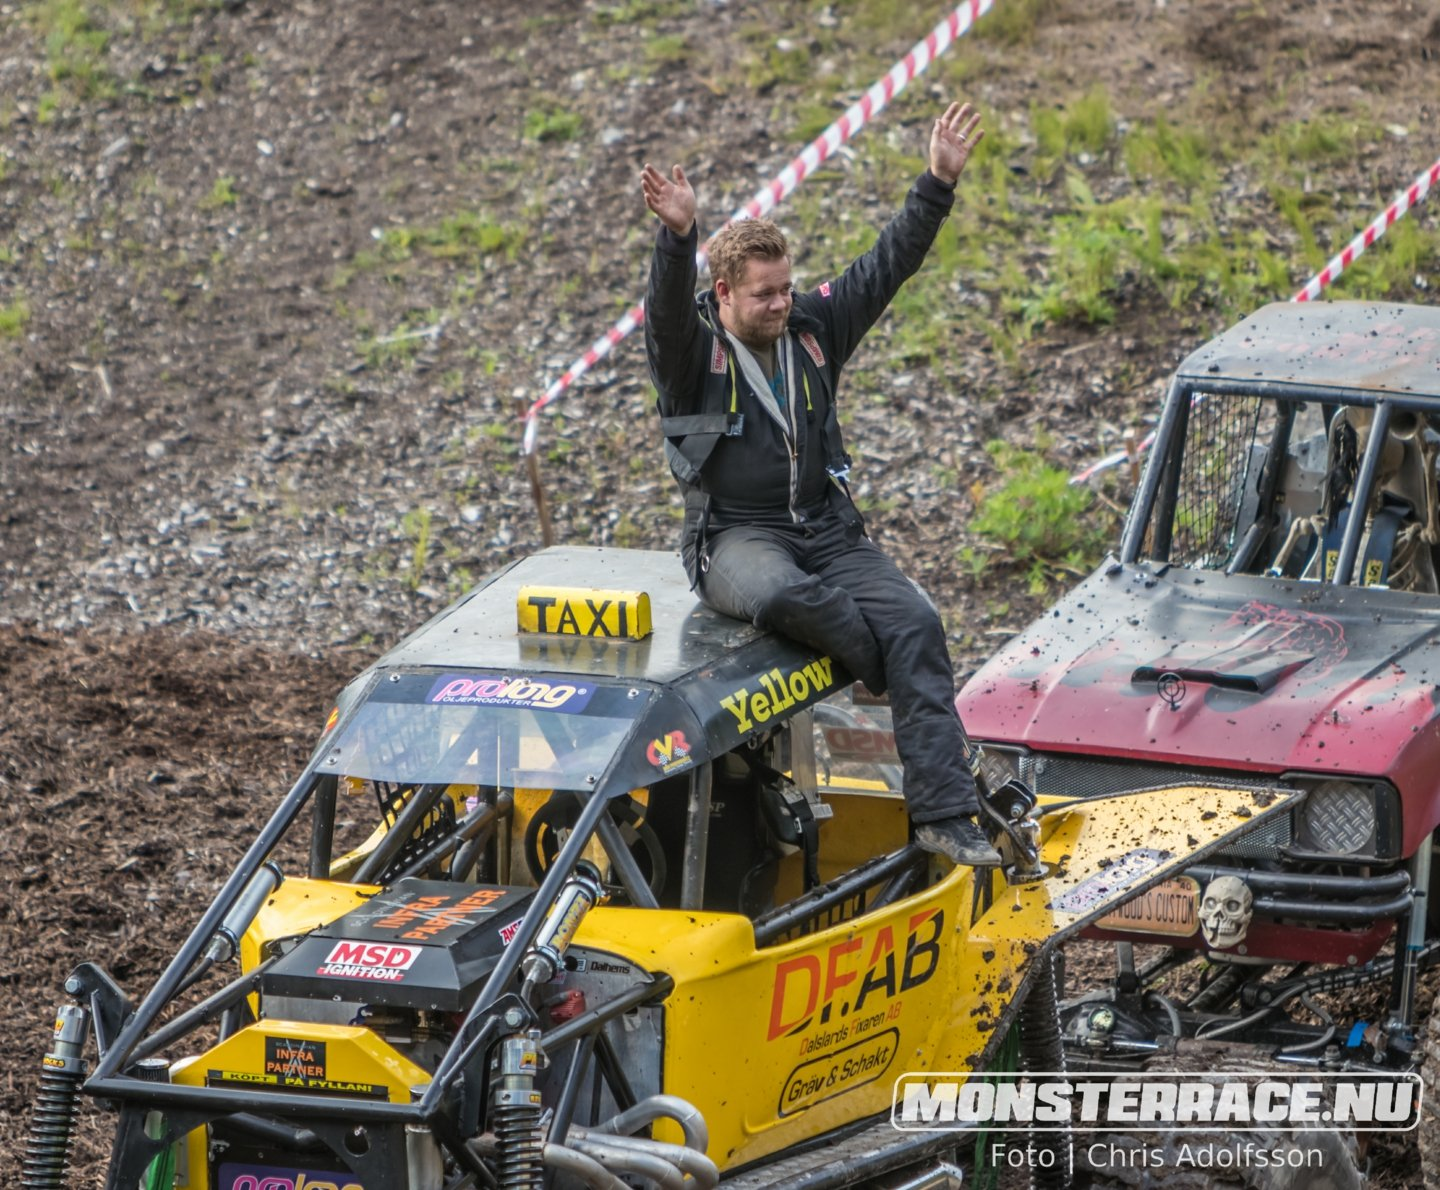 Monsterrace Ed dag 1 (89)